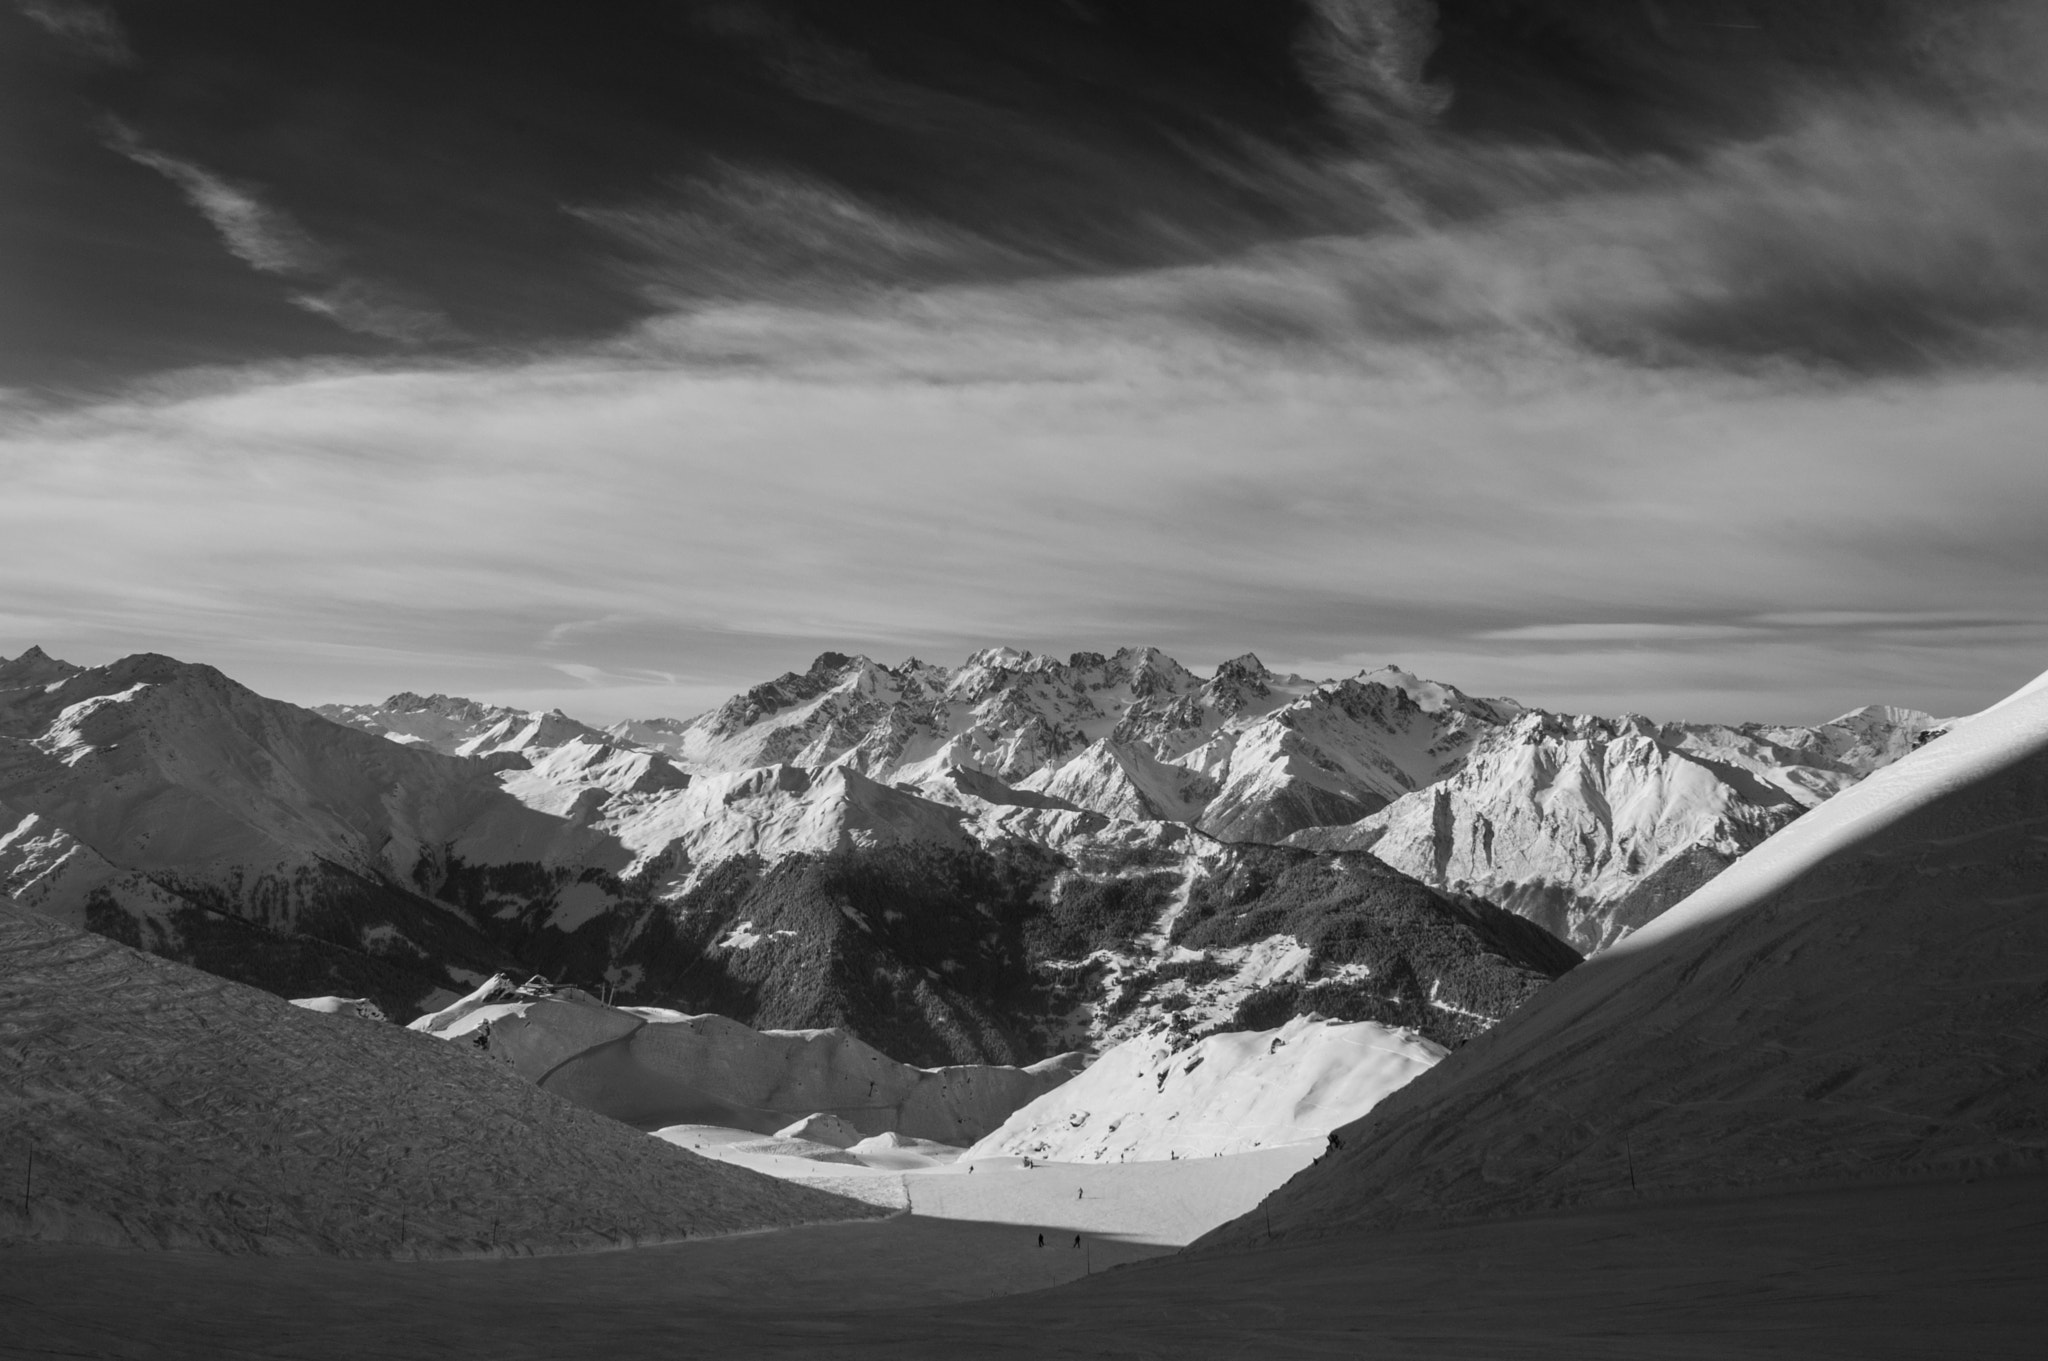 Photograph On piste by Martin Romero on 500px